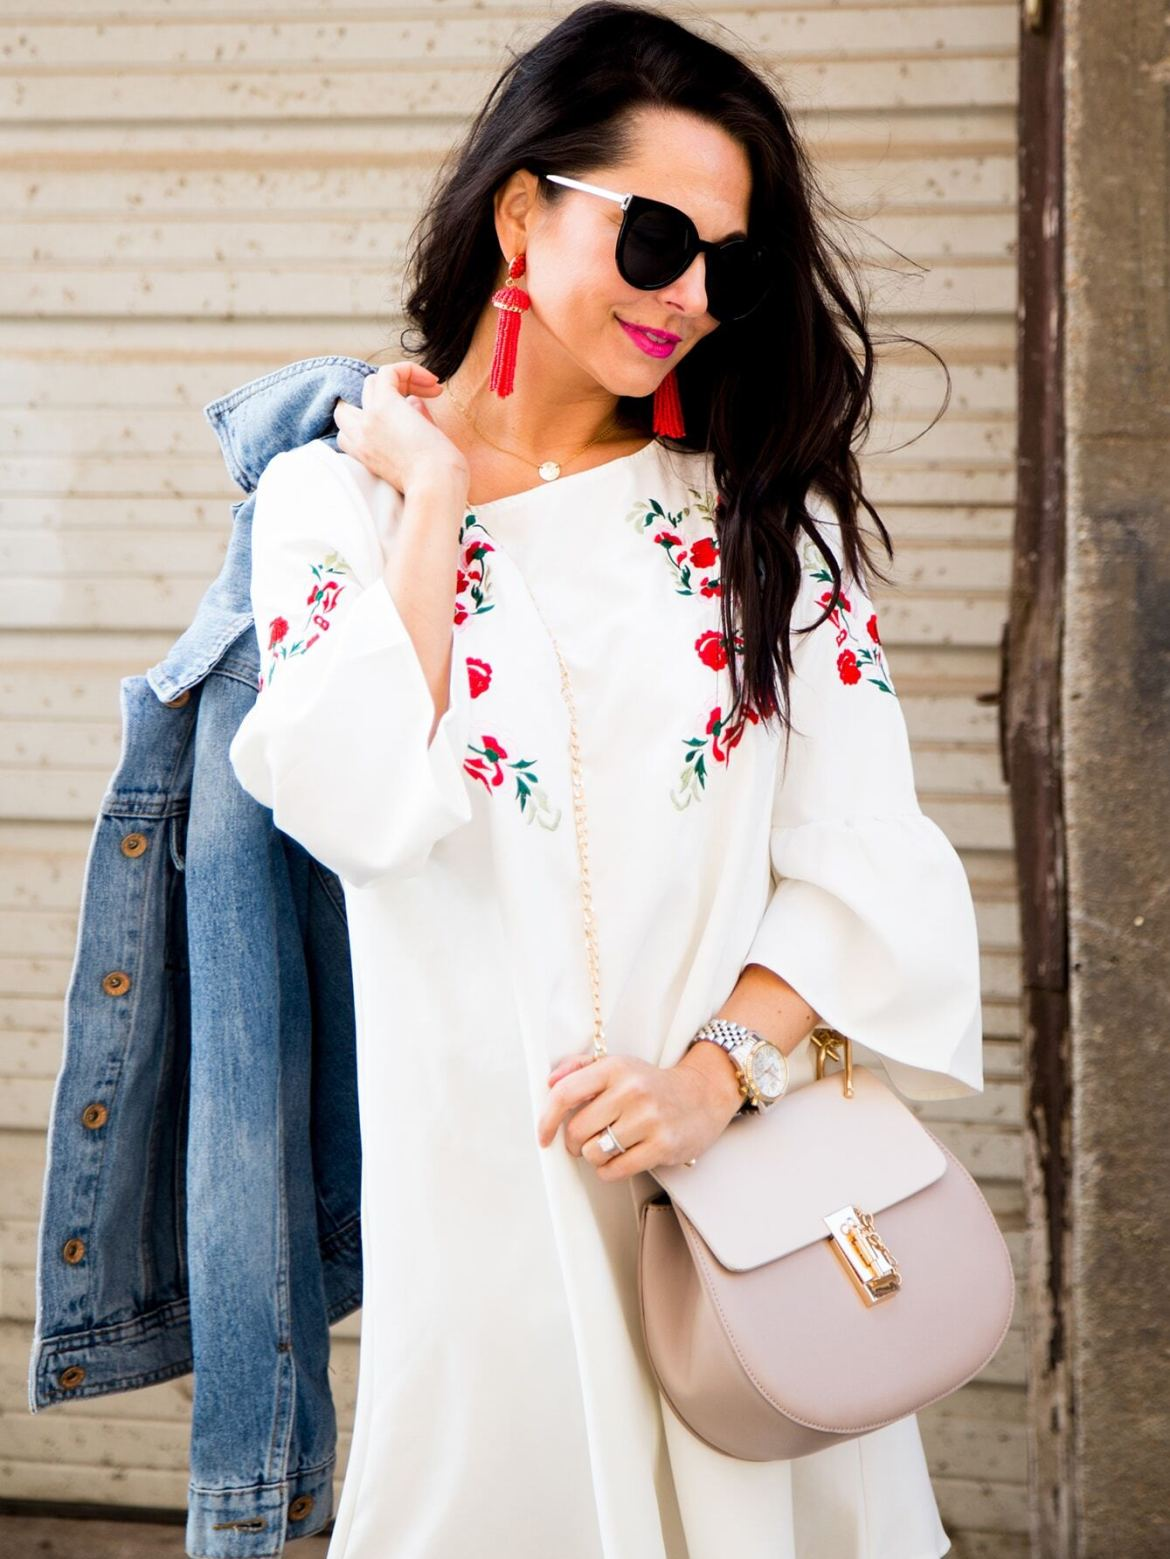 blogger blog tendencias primavera verano trendy fashion shein influencer madrid españa blog de moda